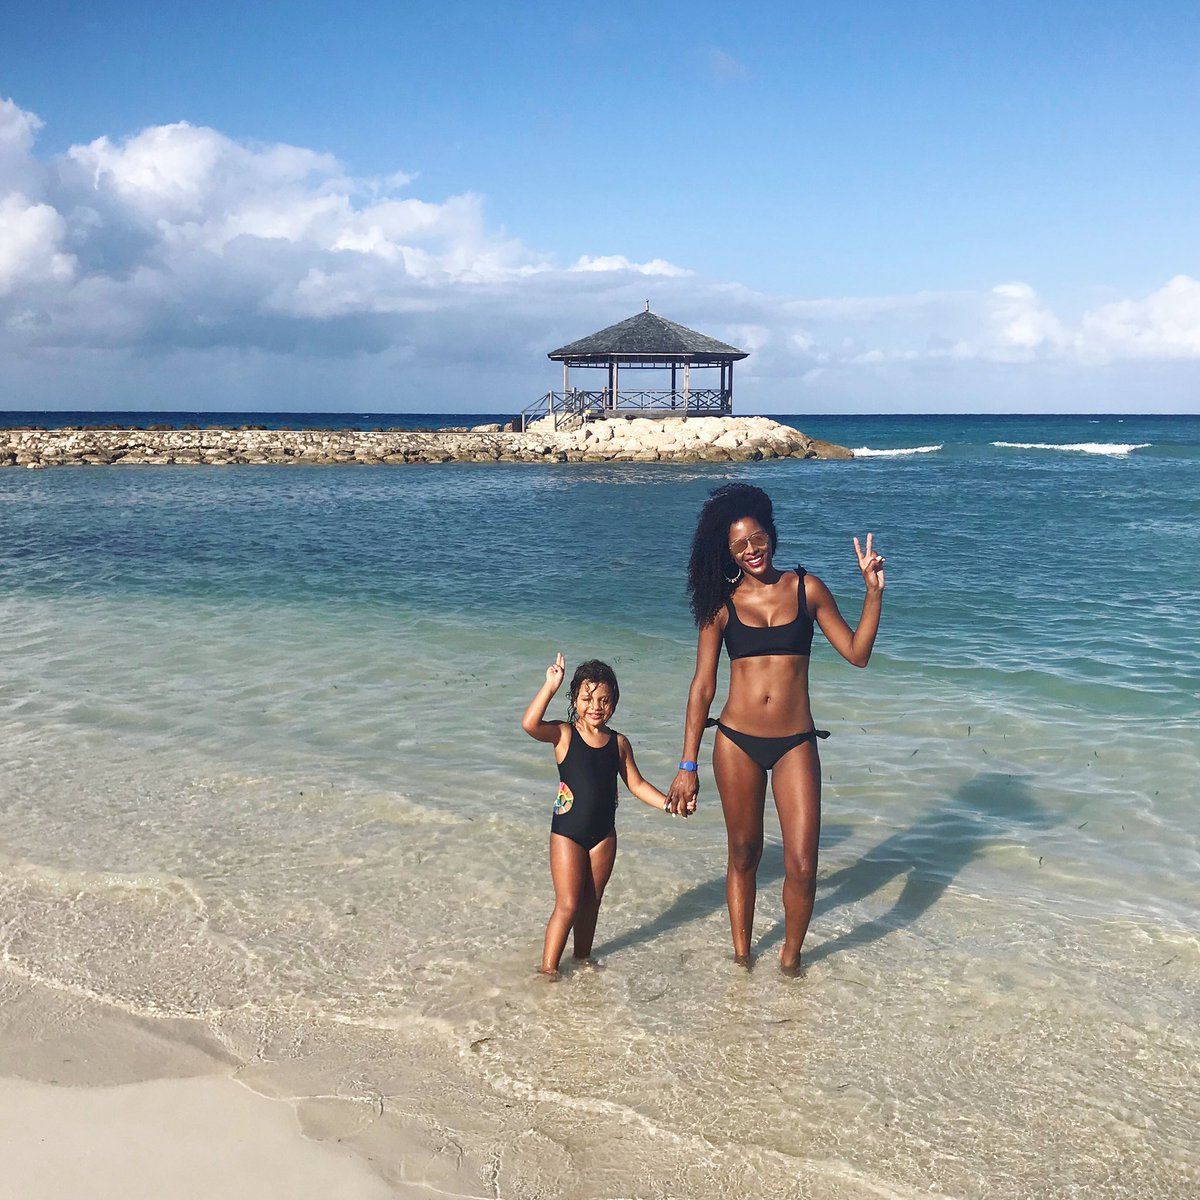 #FlashbackFriday to one of my favorite memories from last year. Happy & grateful, then and now! #jamaica pic.twitter.com/3llyK4H90l